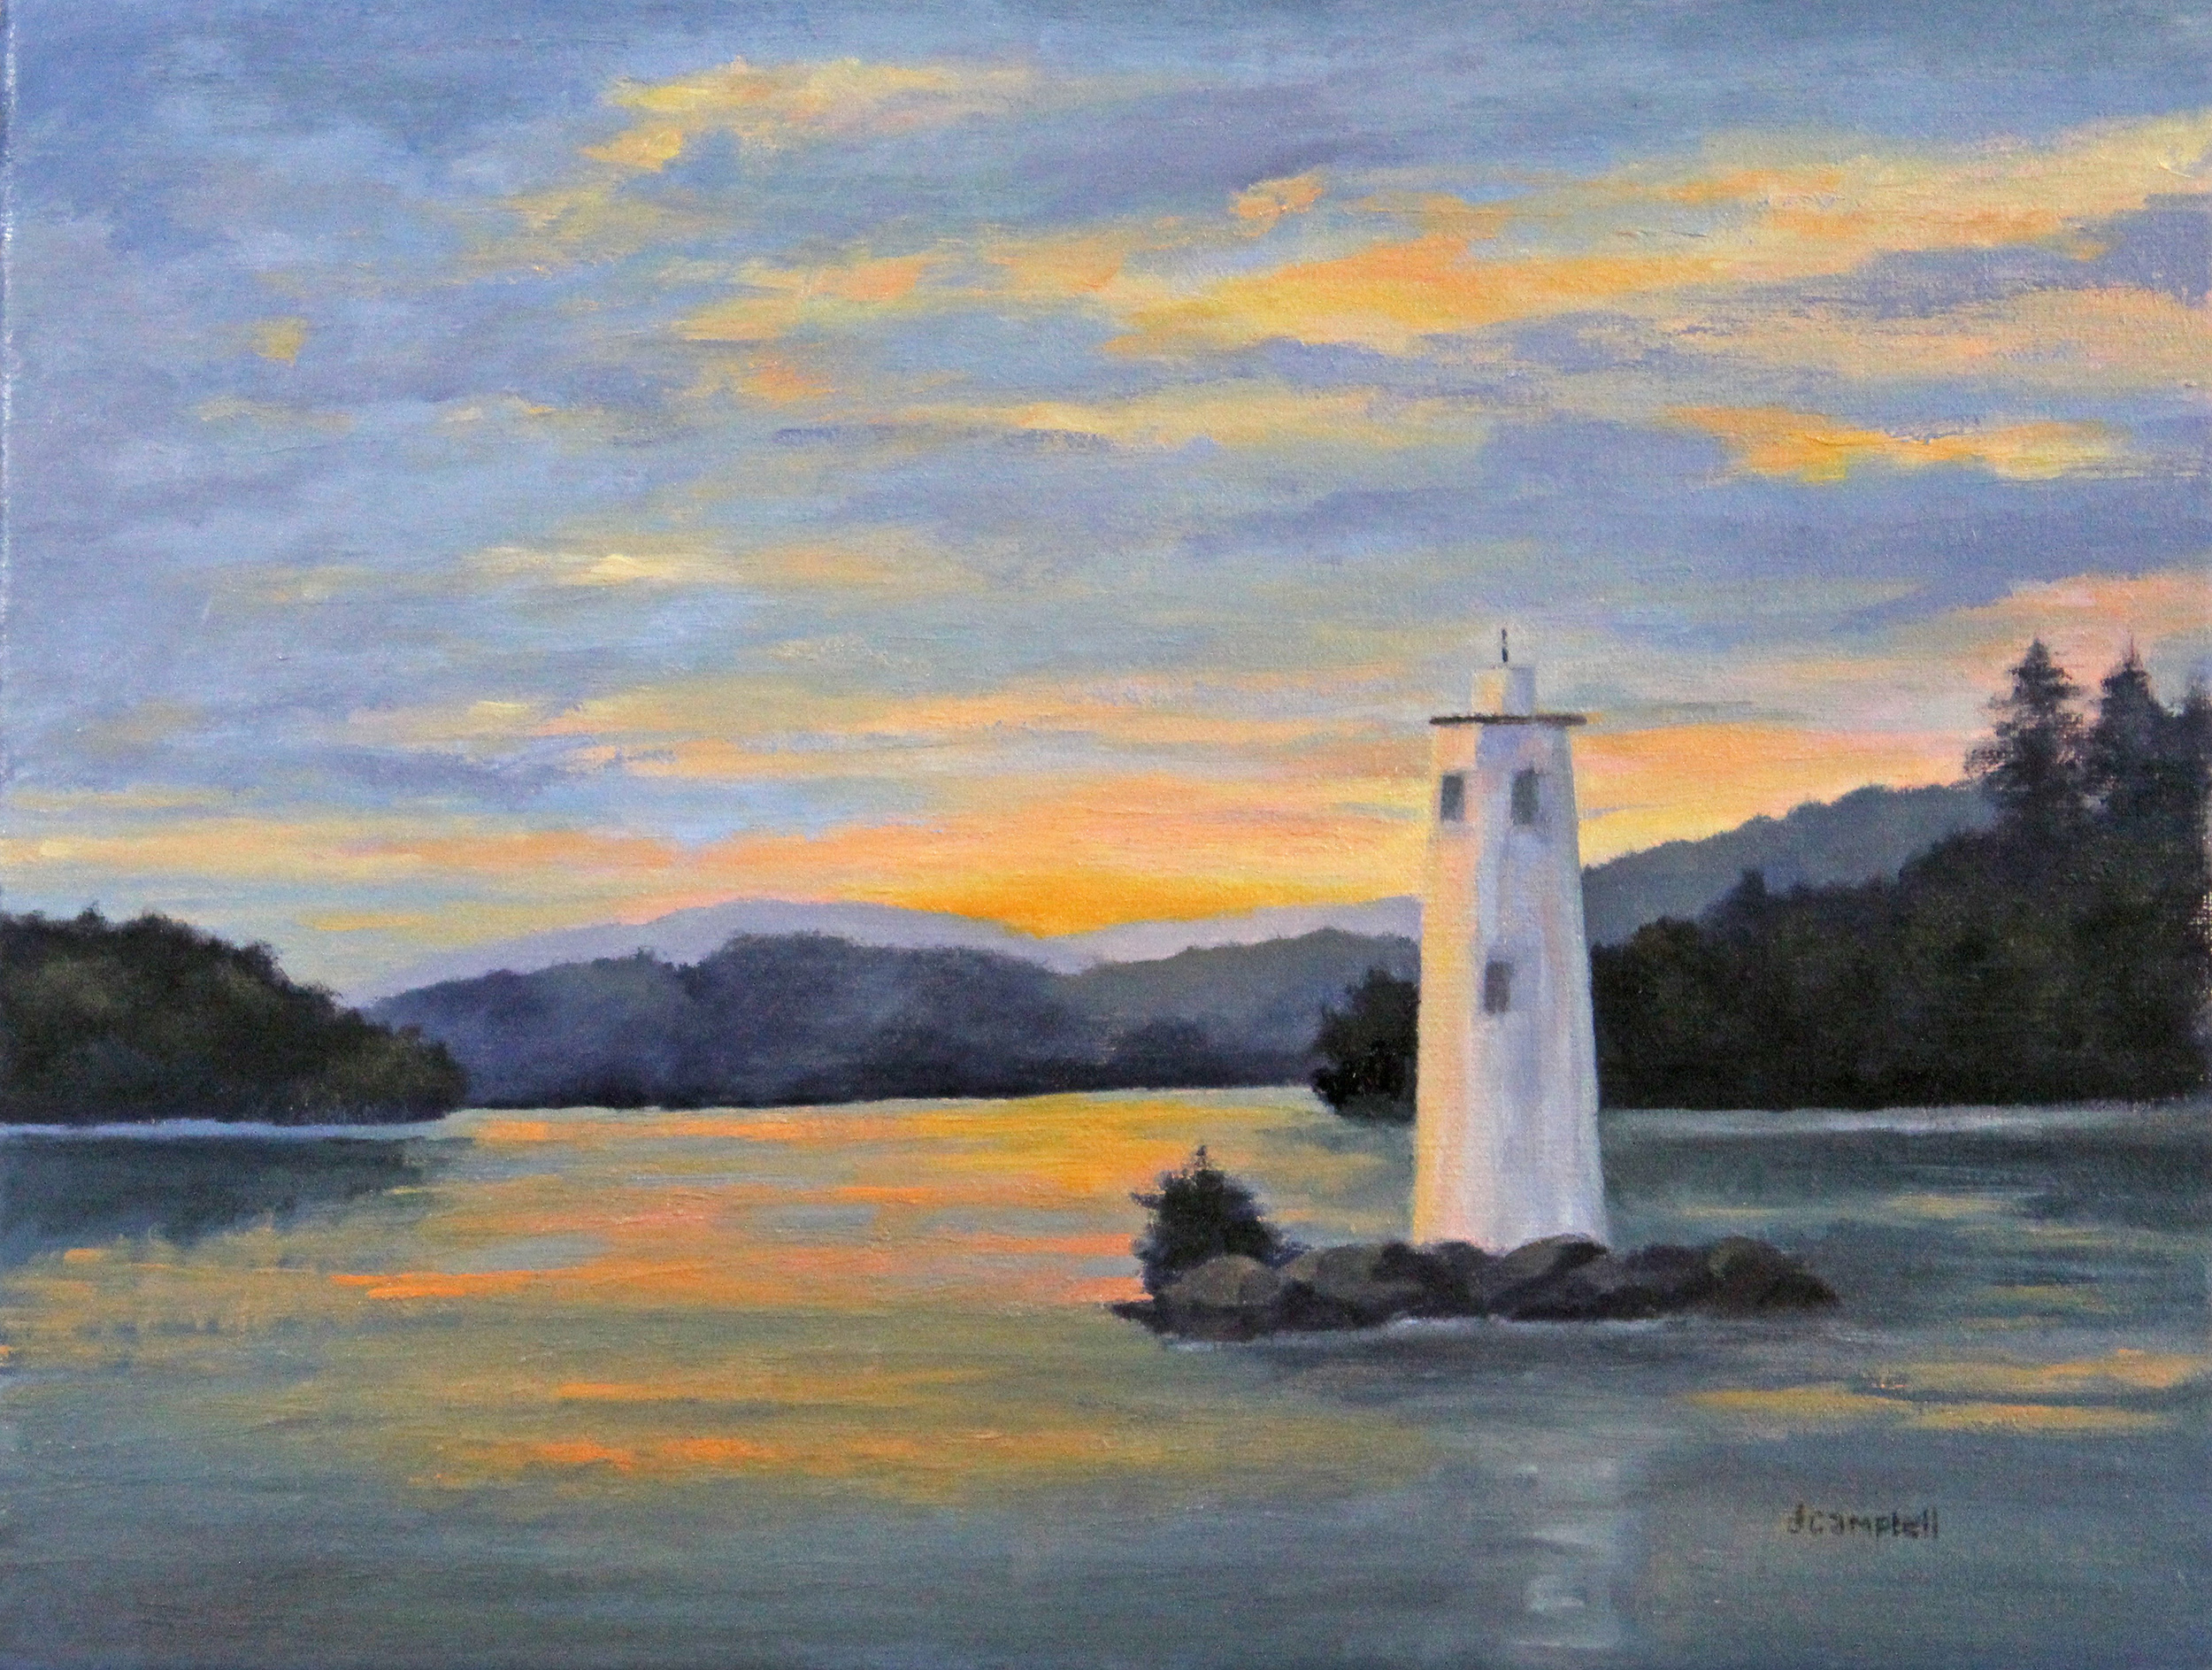 Loon lighthouse on Lake Sunapee at sunset